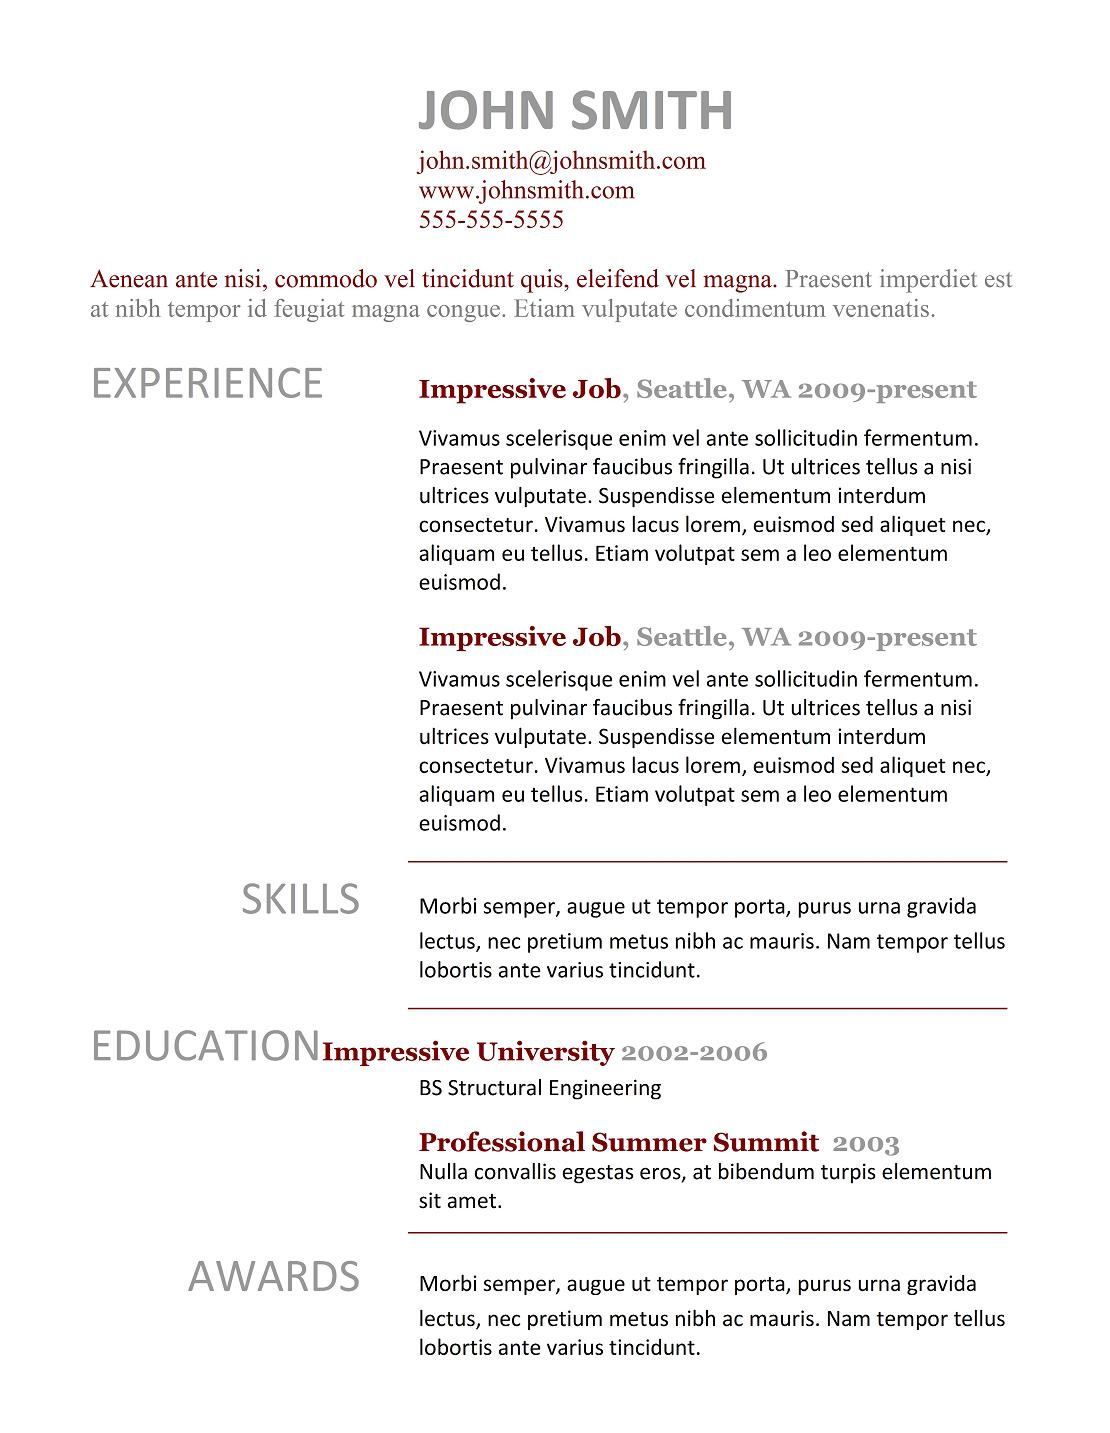 resume template for commerce students - Resume Templates To Download